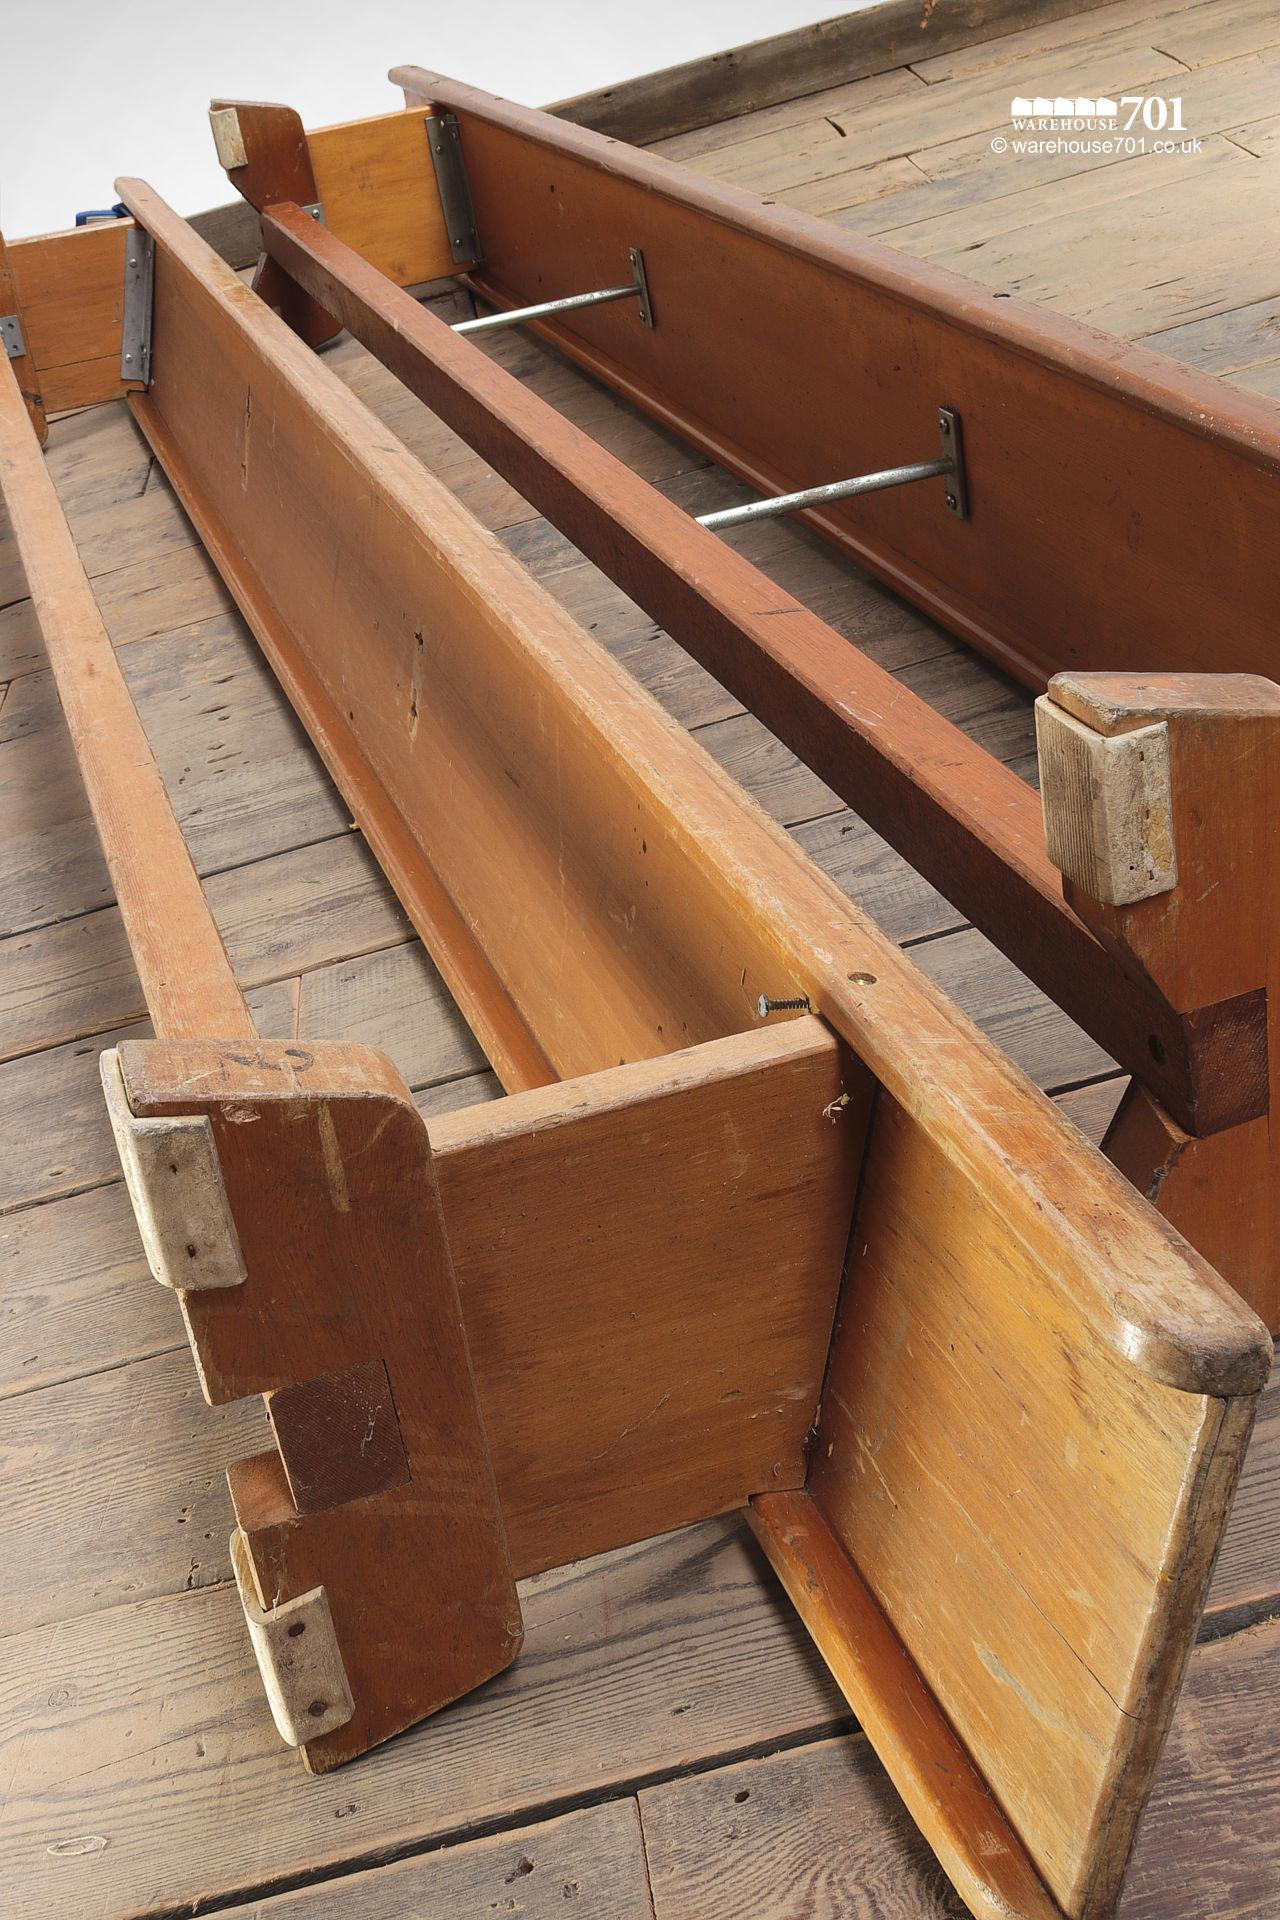 Two Salvaged Gymnasium or Locker Room Benches #5